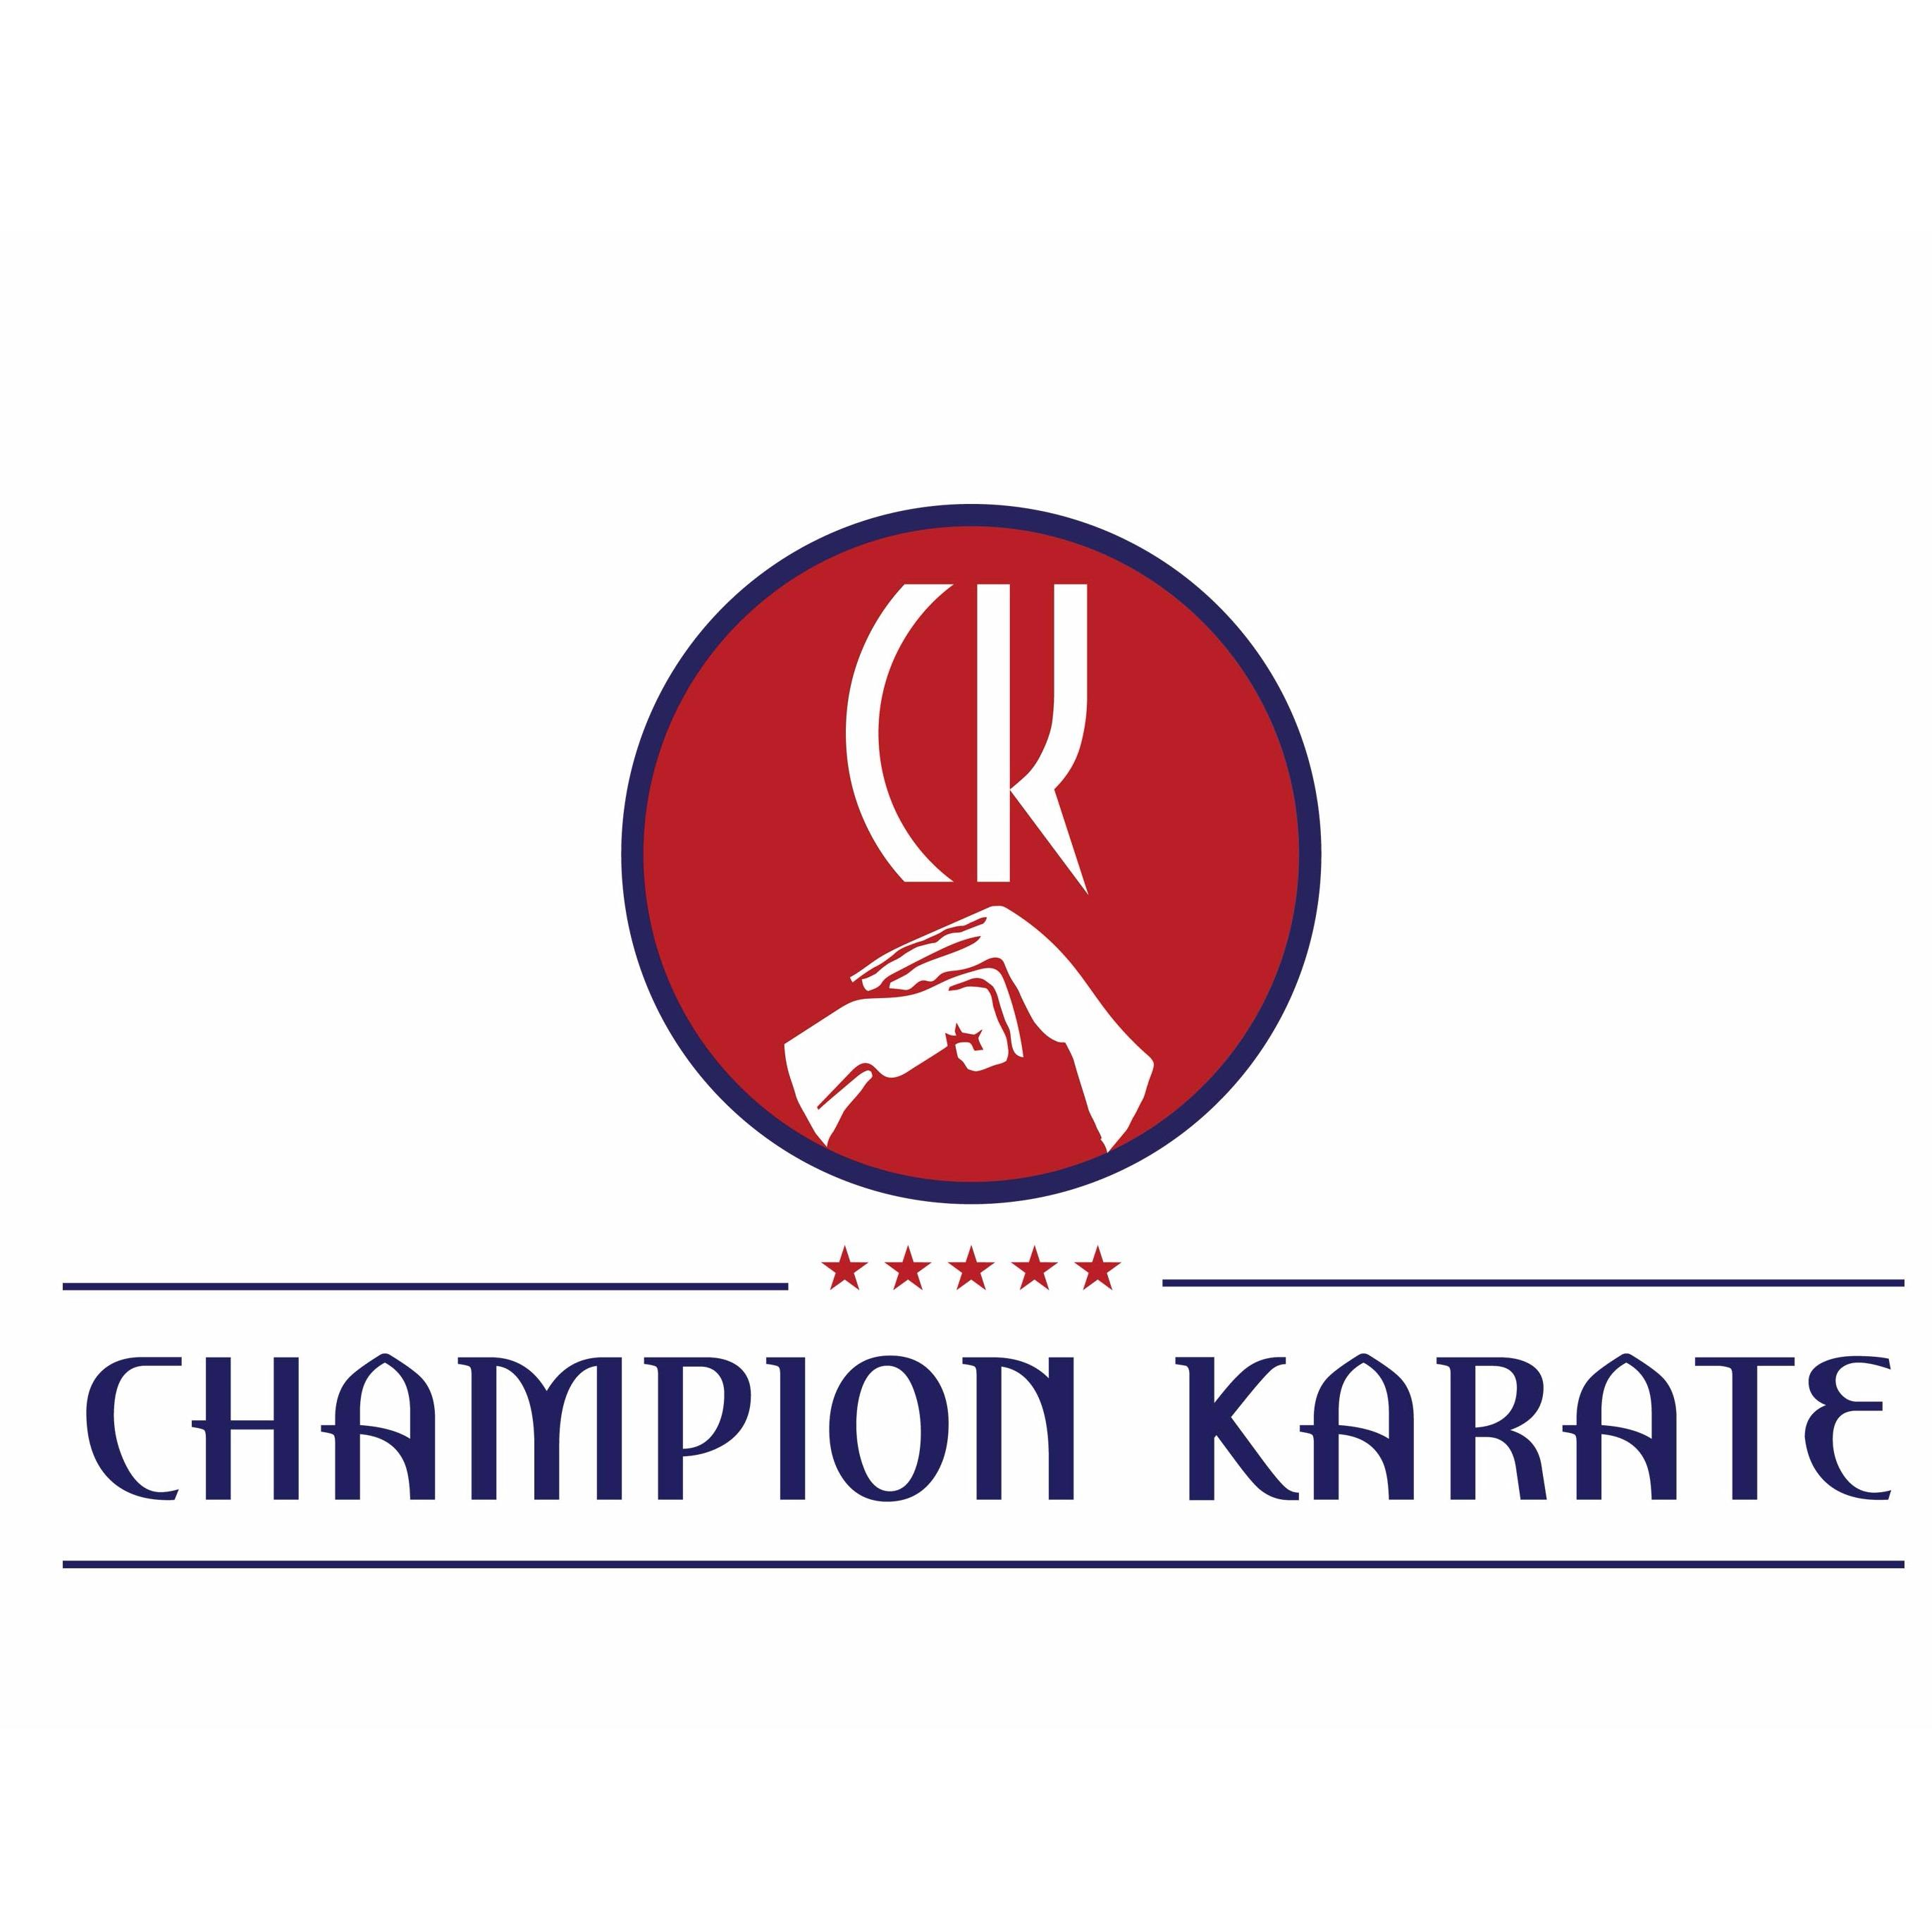 Champion coupon code